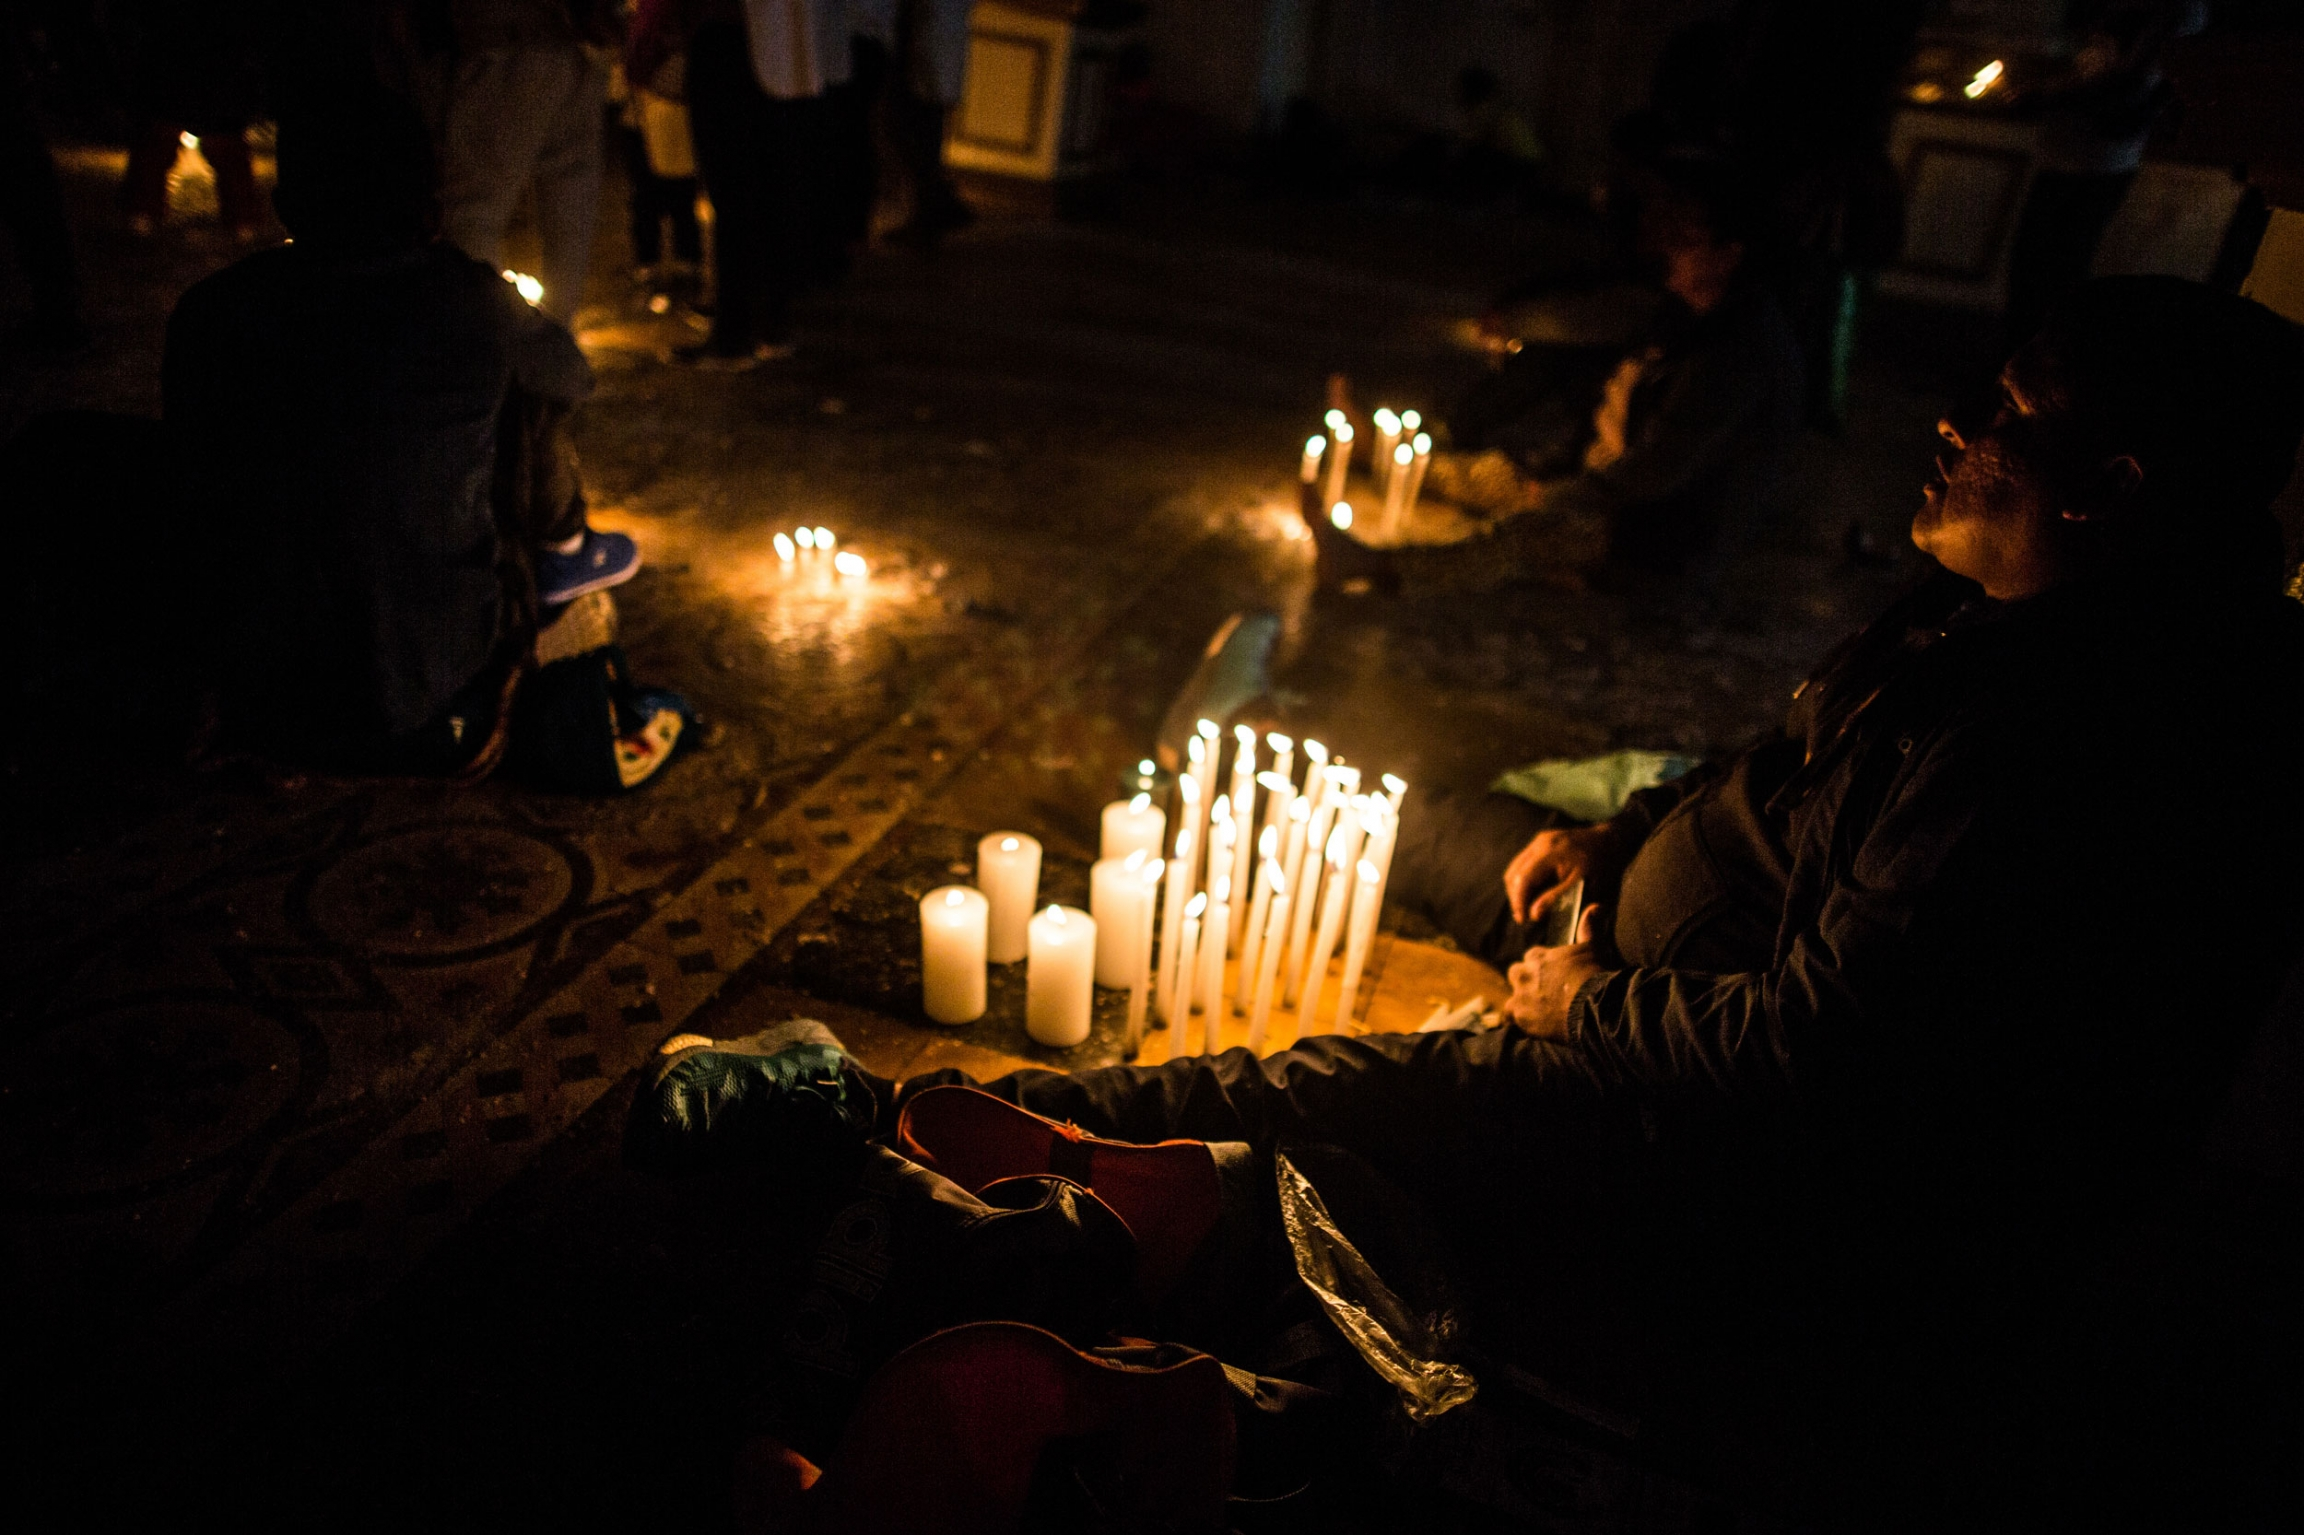 A person is shown sitting on the ground with their legs on either side of a display of several lit candles.